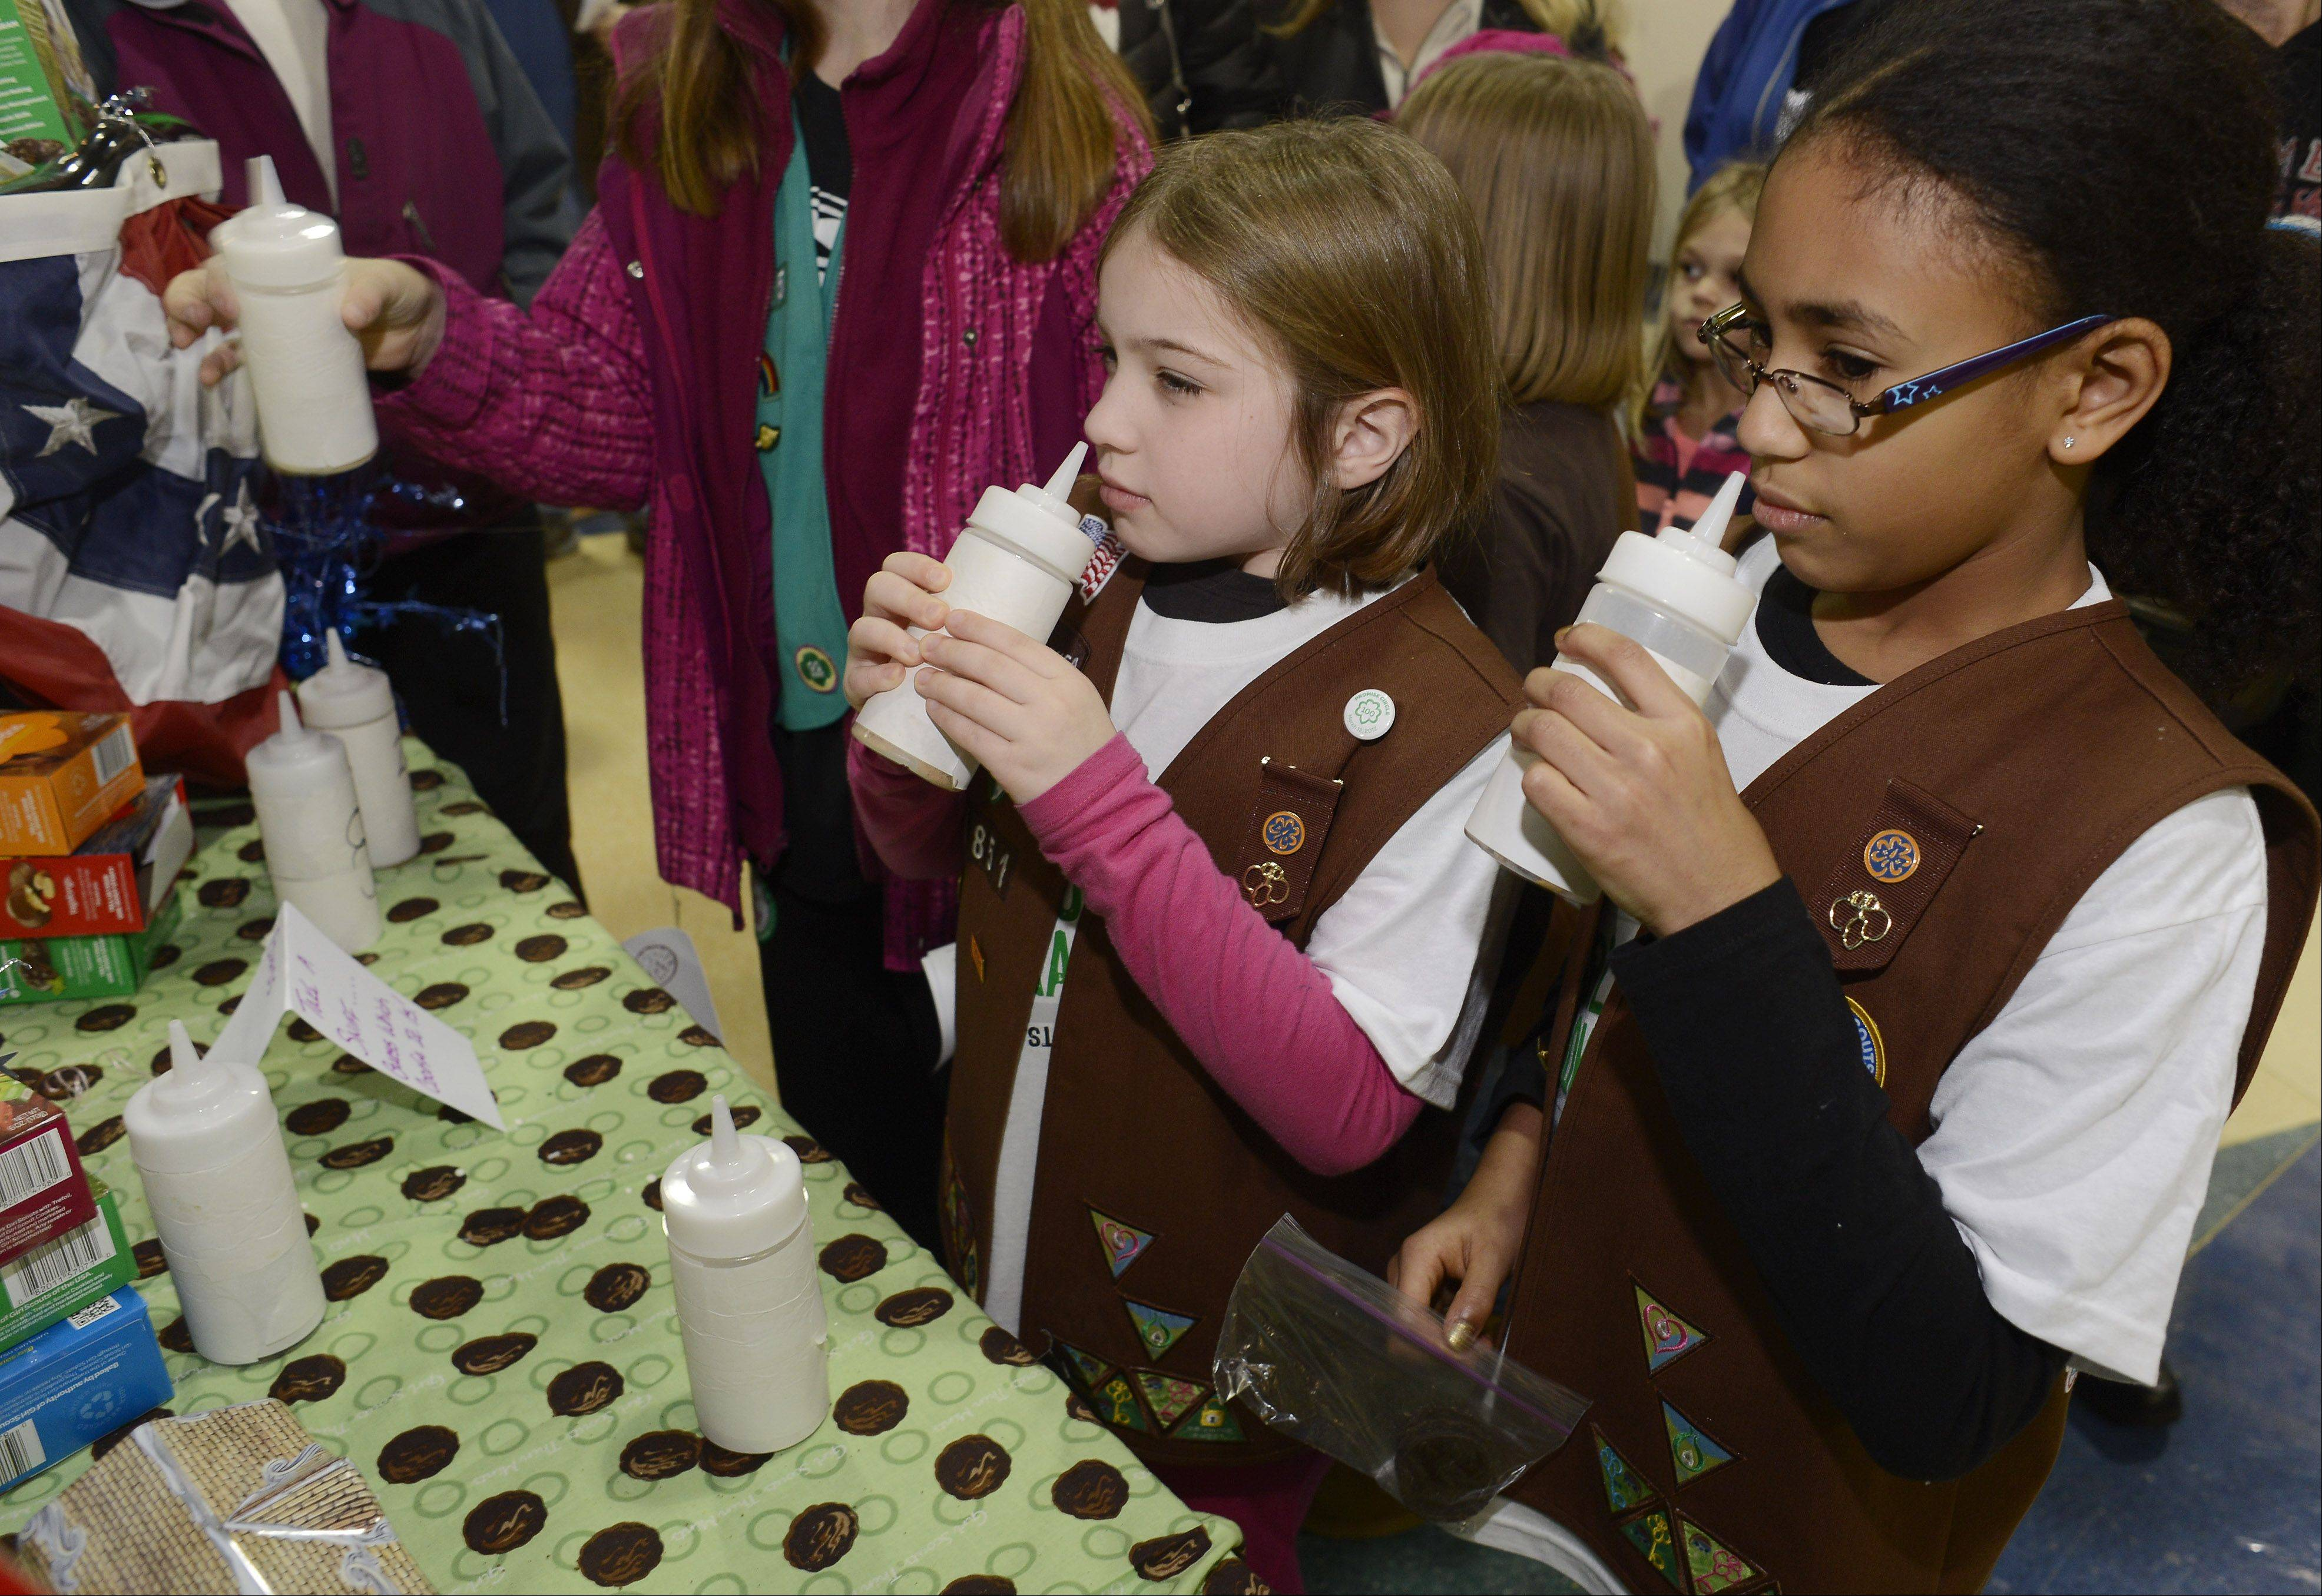 Madalyn Fetterman, 8, left, and Alessandra Carrasquillo, 8, both of Hanover Park and members of Brownie Troop 41857, learn to identify cookies by smell as the Girl Scouts of Greater Chicago and Northwest Indiana kicks off its annual Girl Scout Cookie Program Saturday at the Allstate Arena in Rosemont.